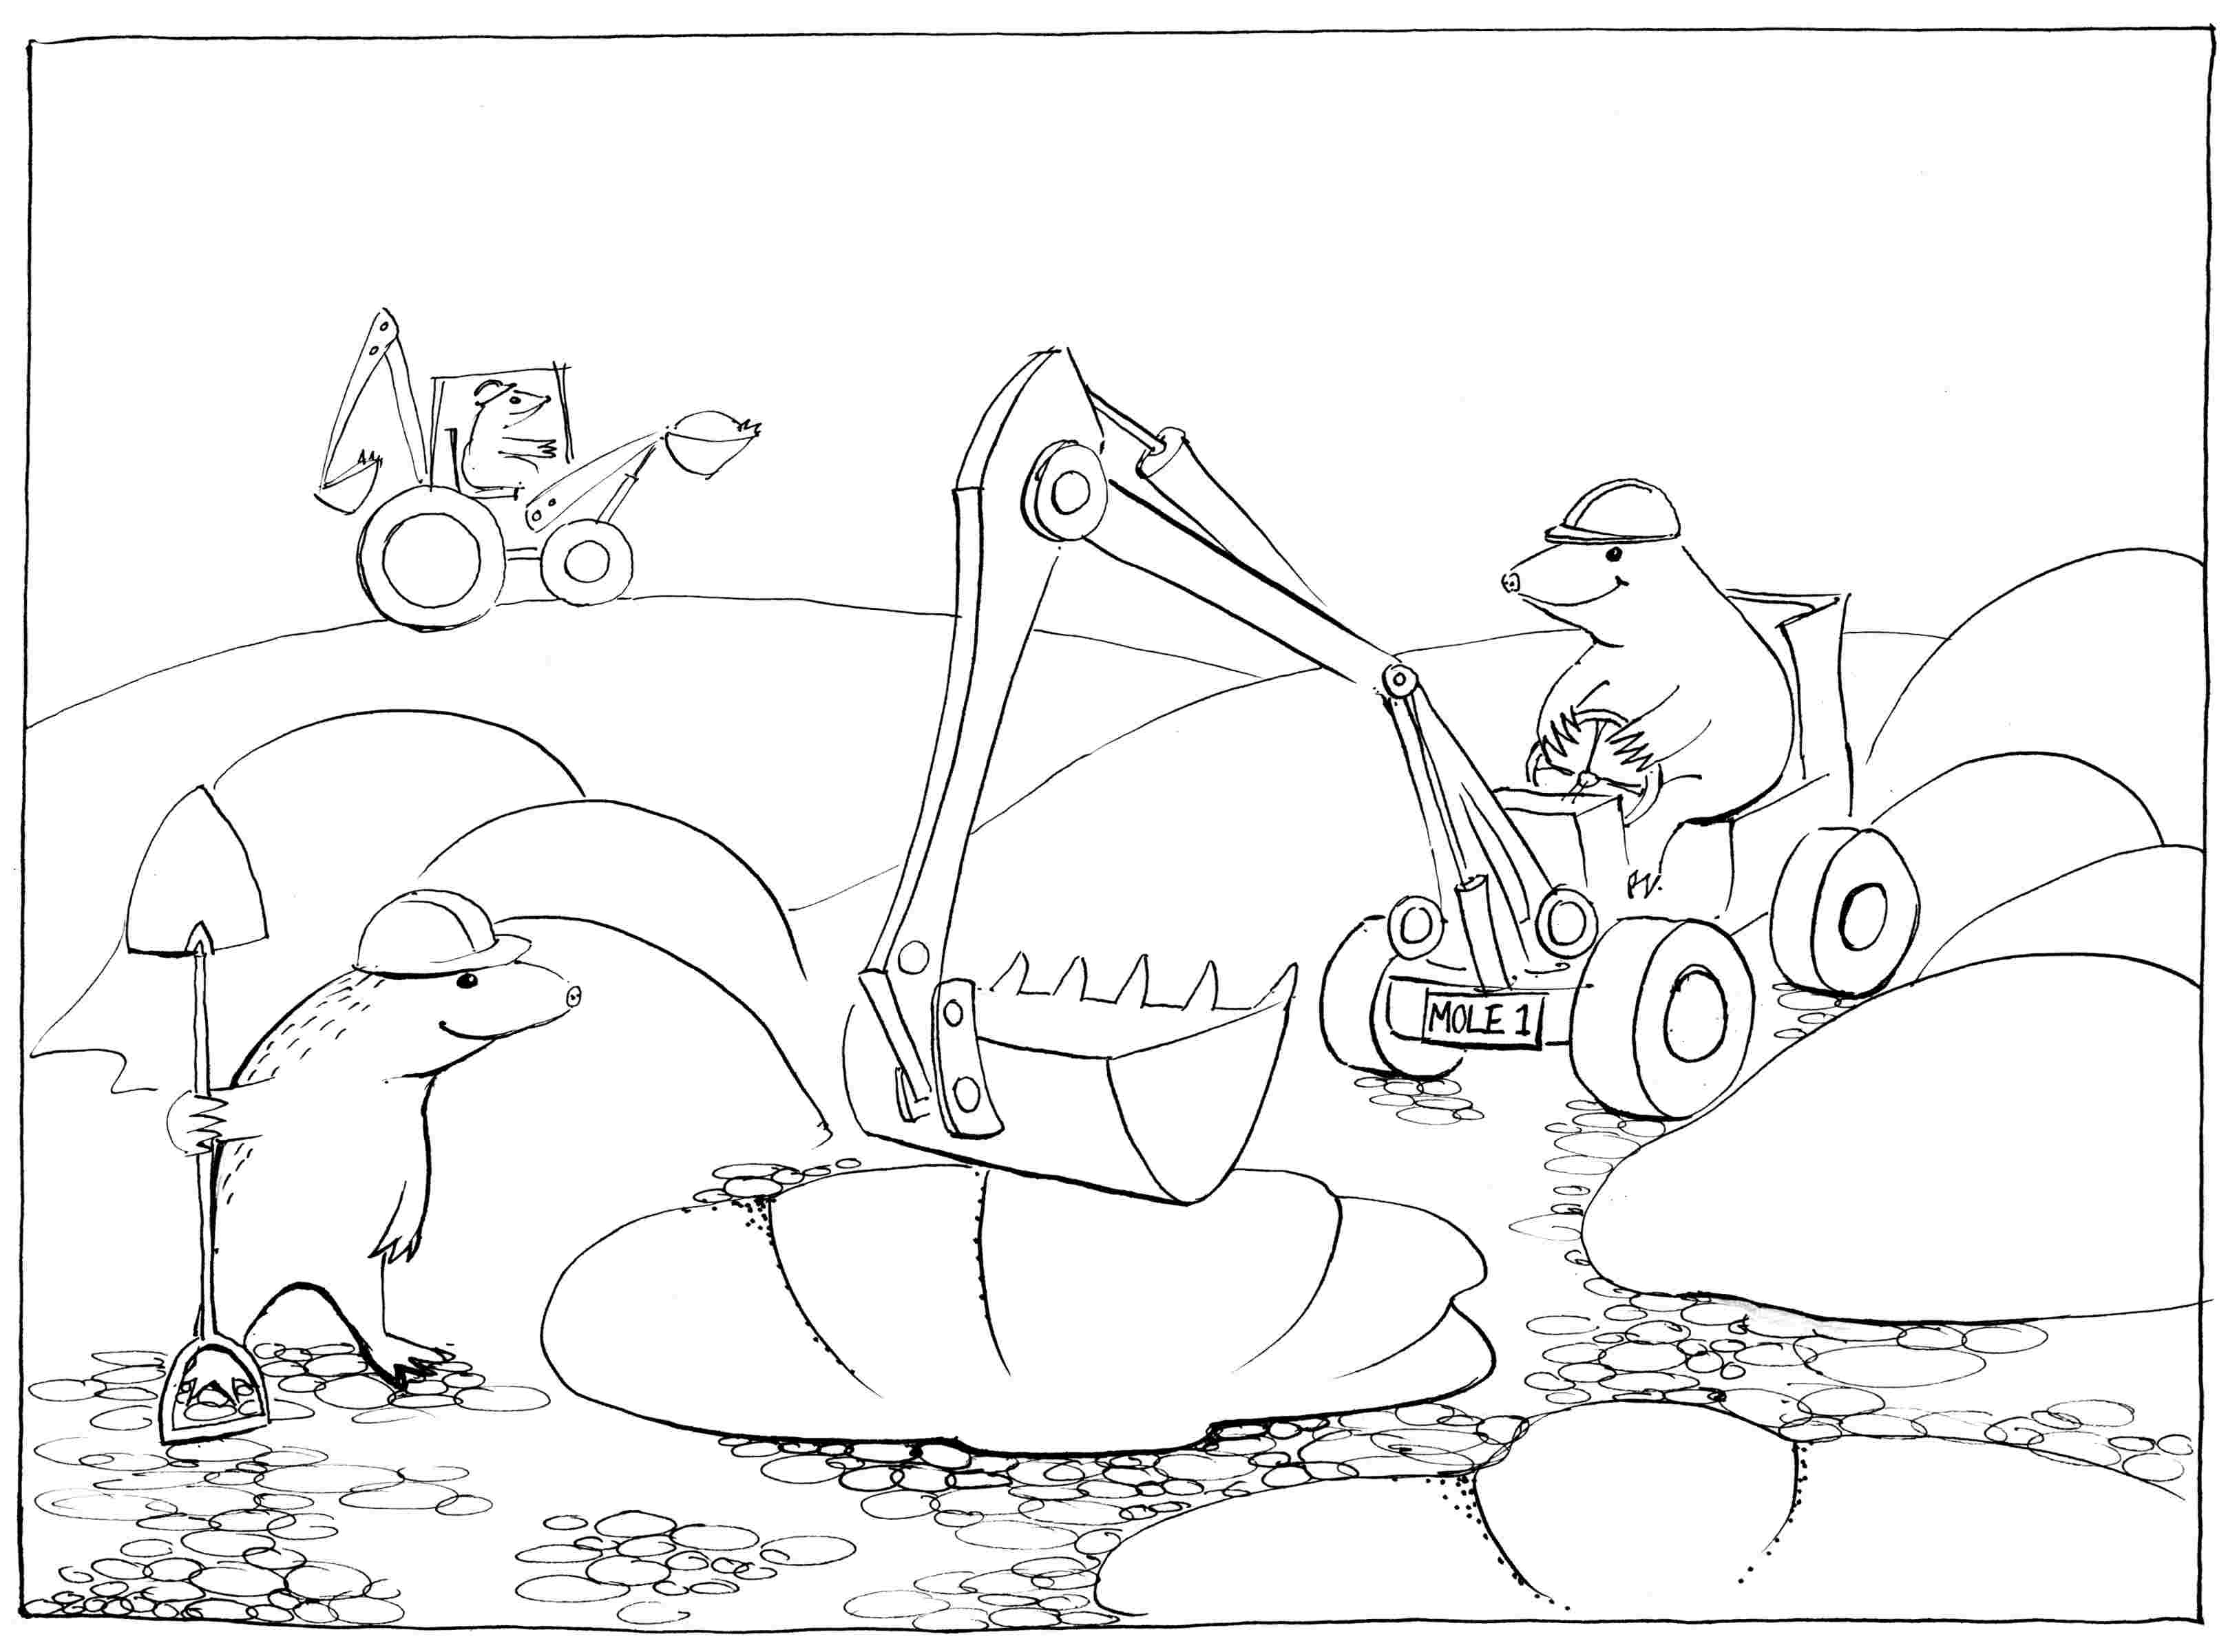 Mole Hills - colouring-in drawing - to download, right click and save, print out and colour in!